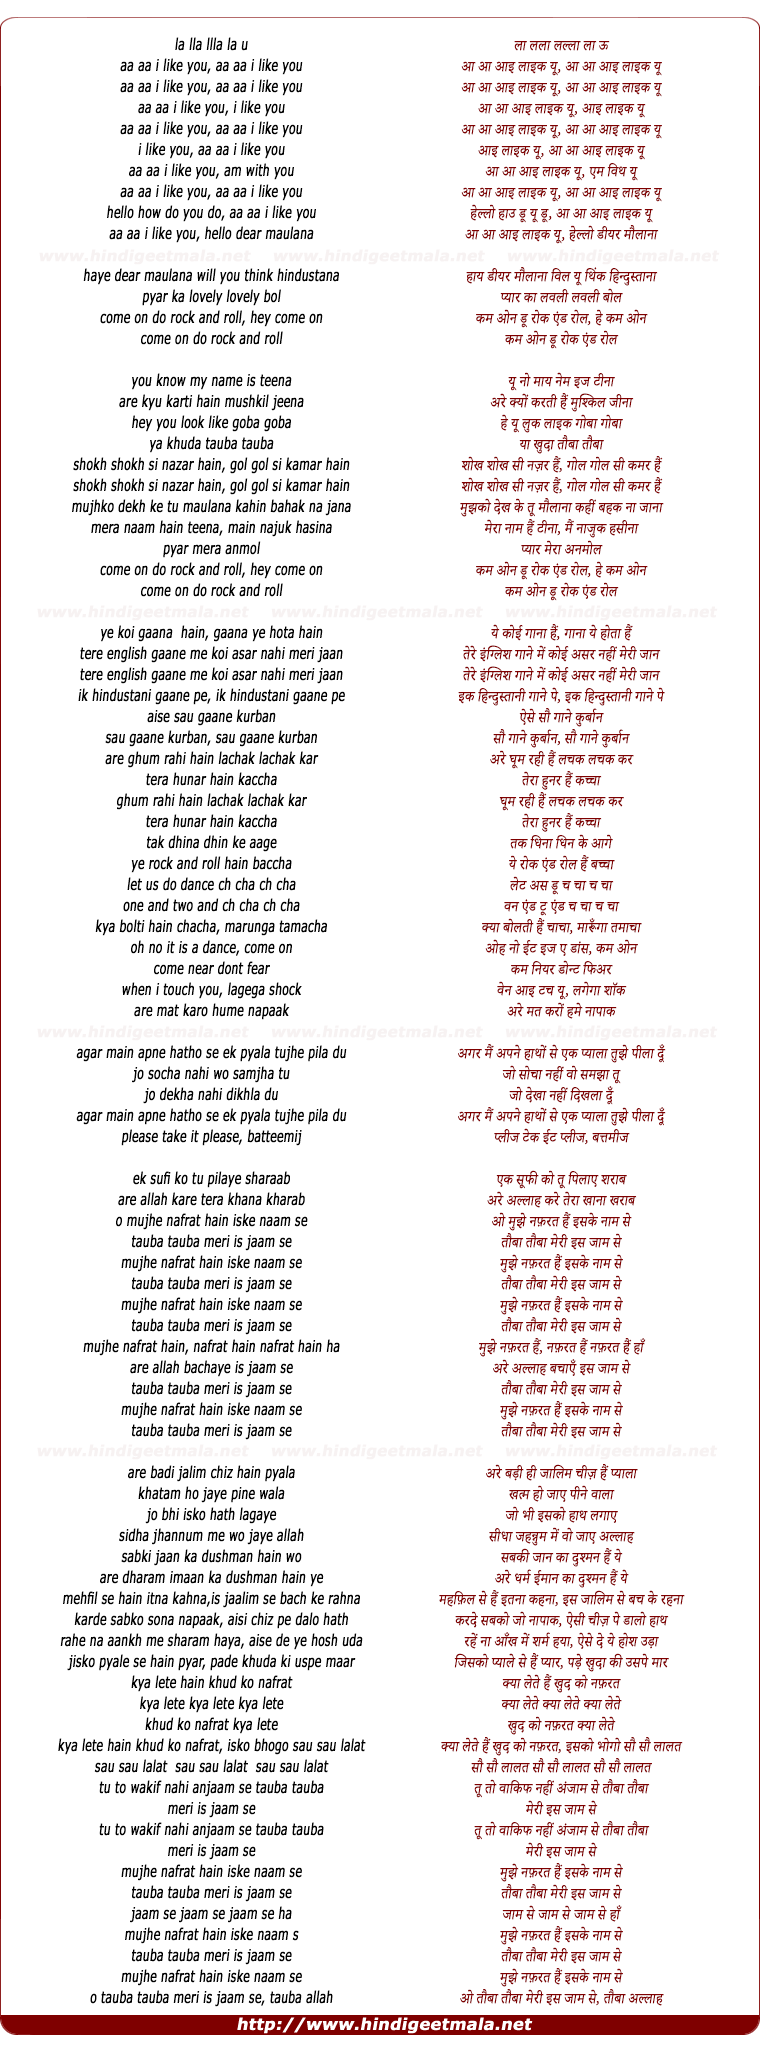 lyrics of song I Like You